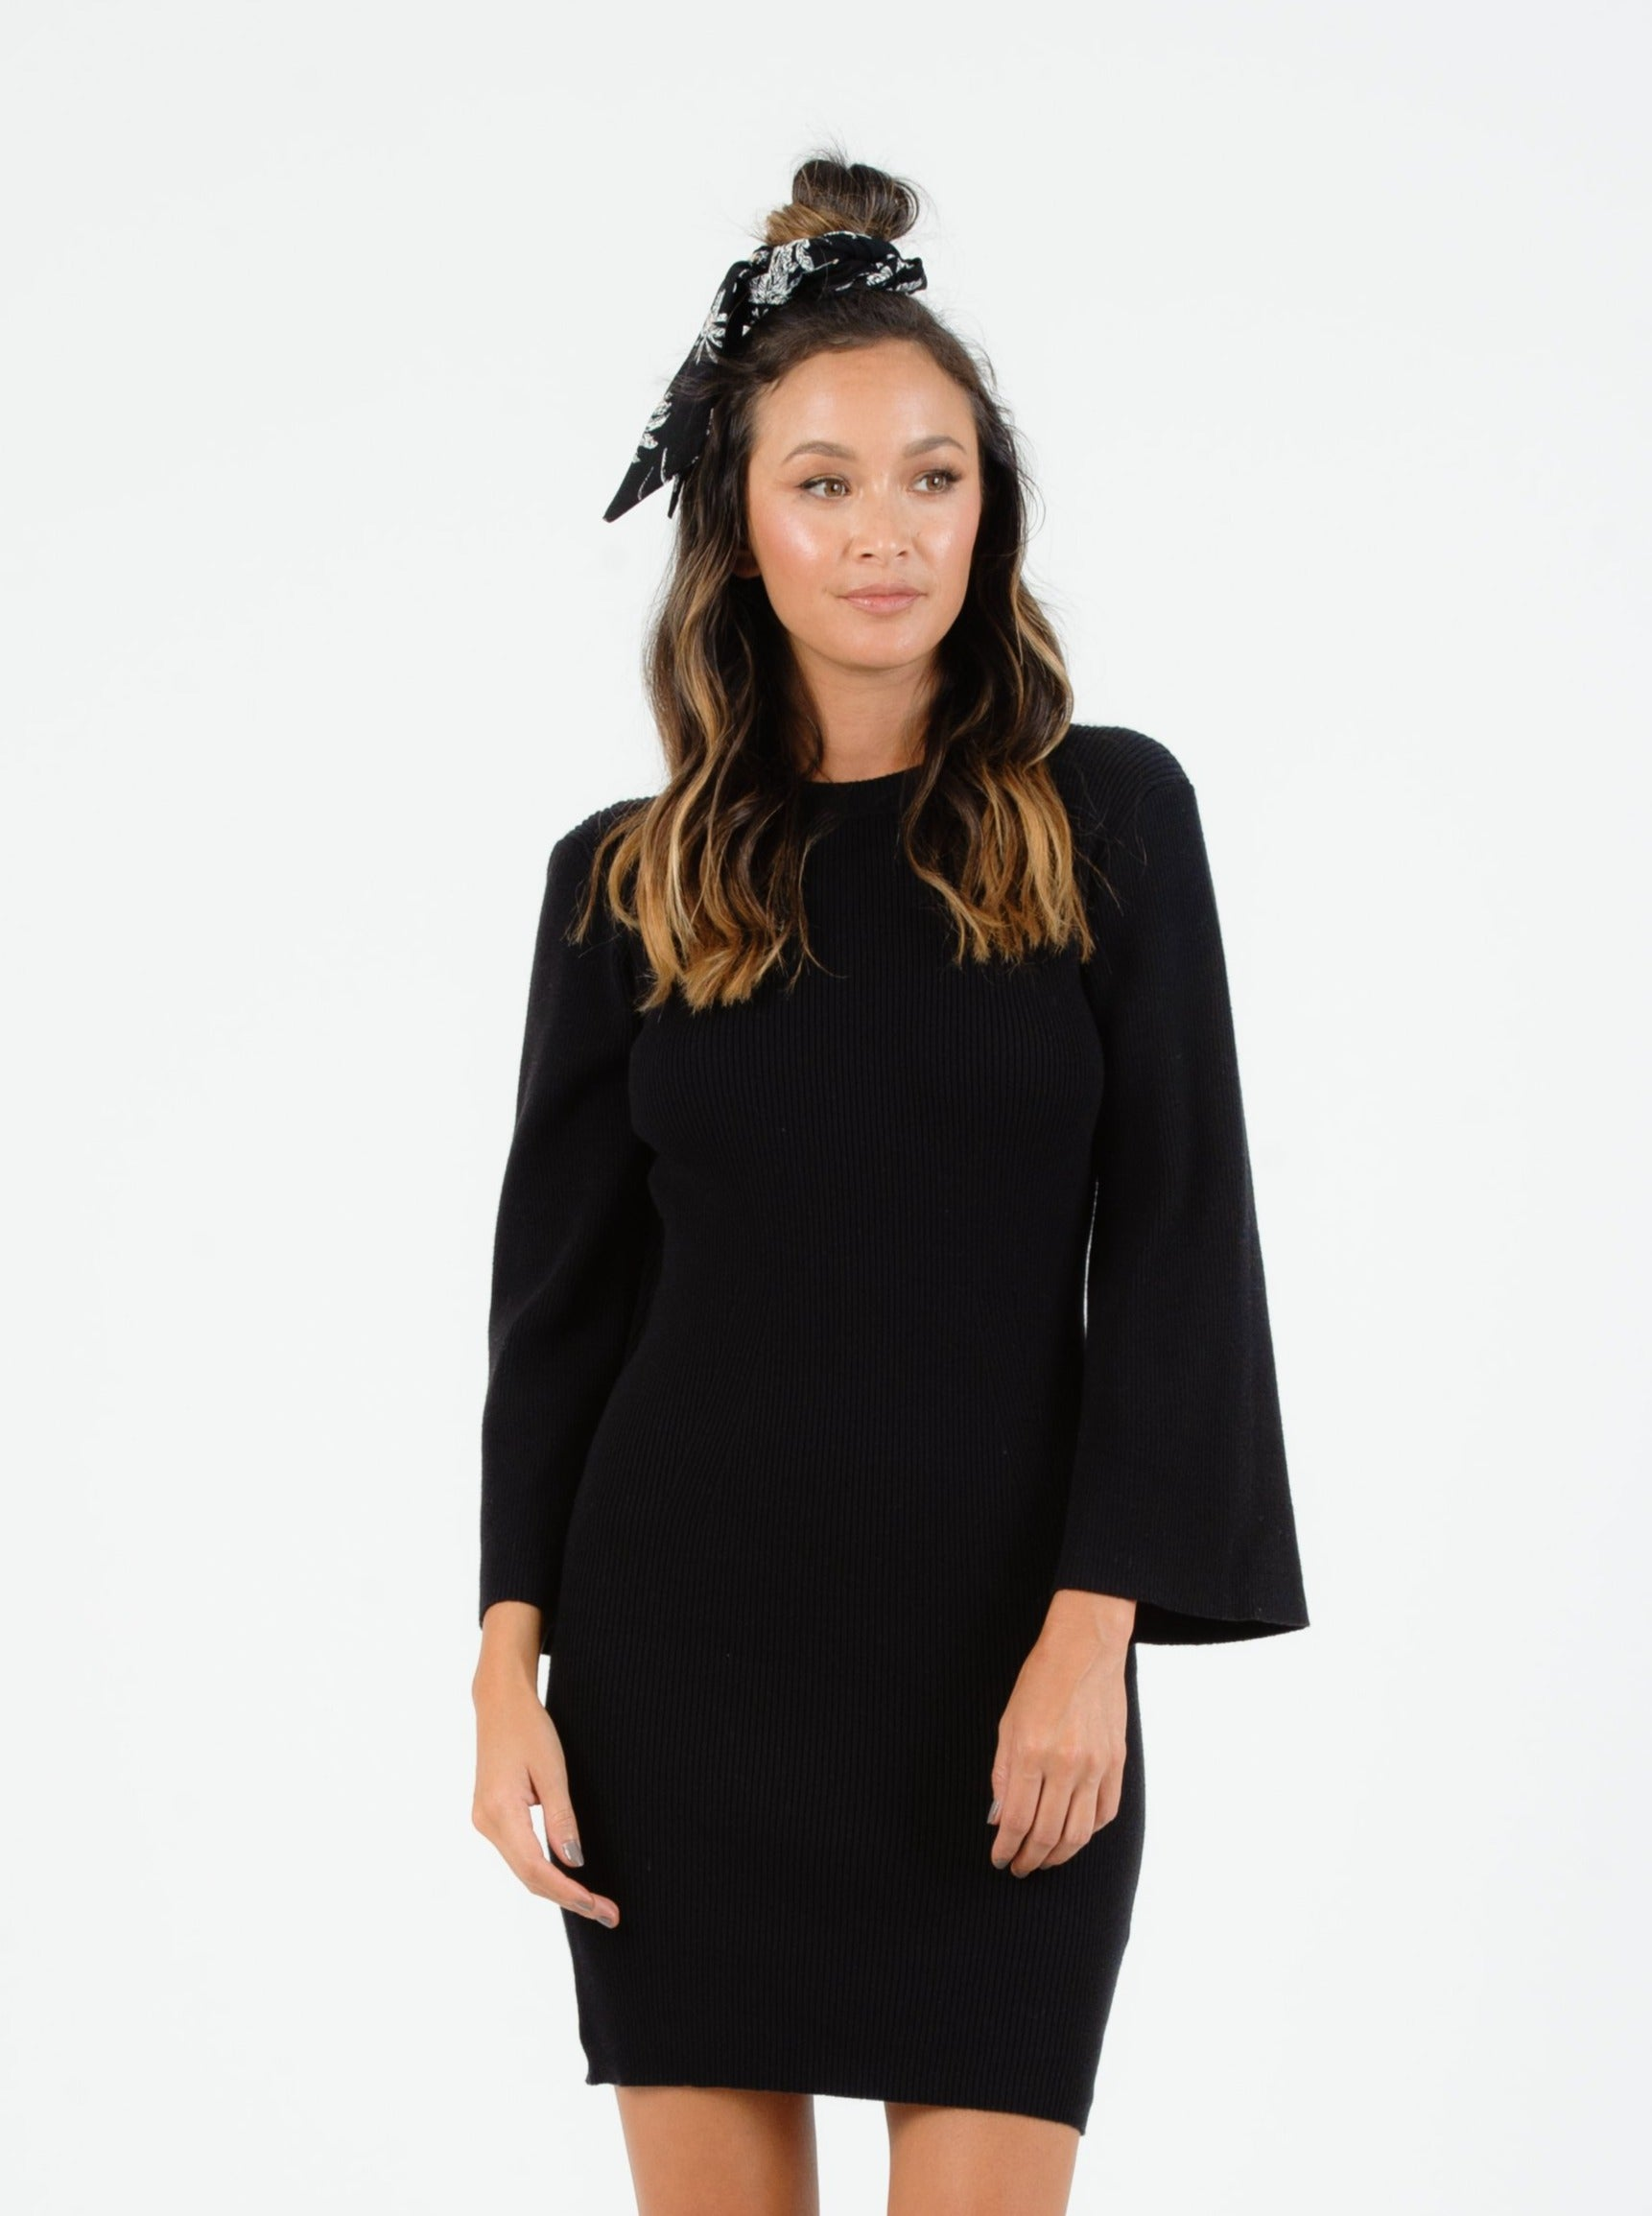 SERAFINA BLACK RIB SWEATER DRESS WITH BELL SLEEVES